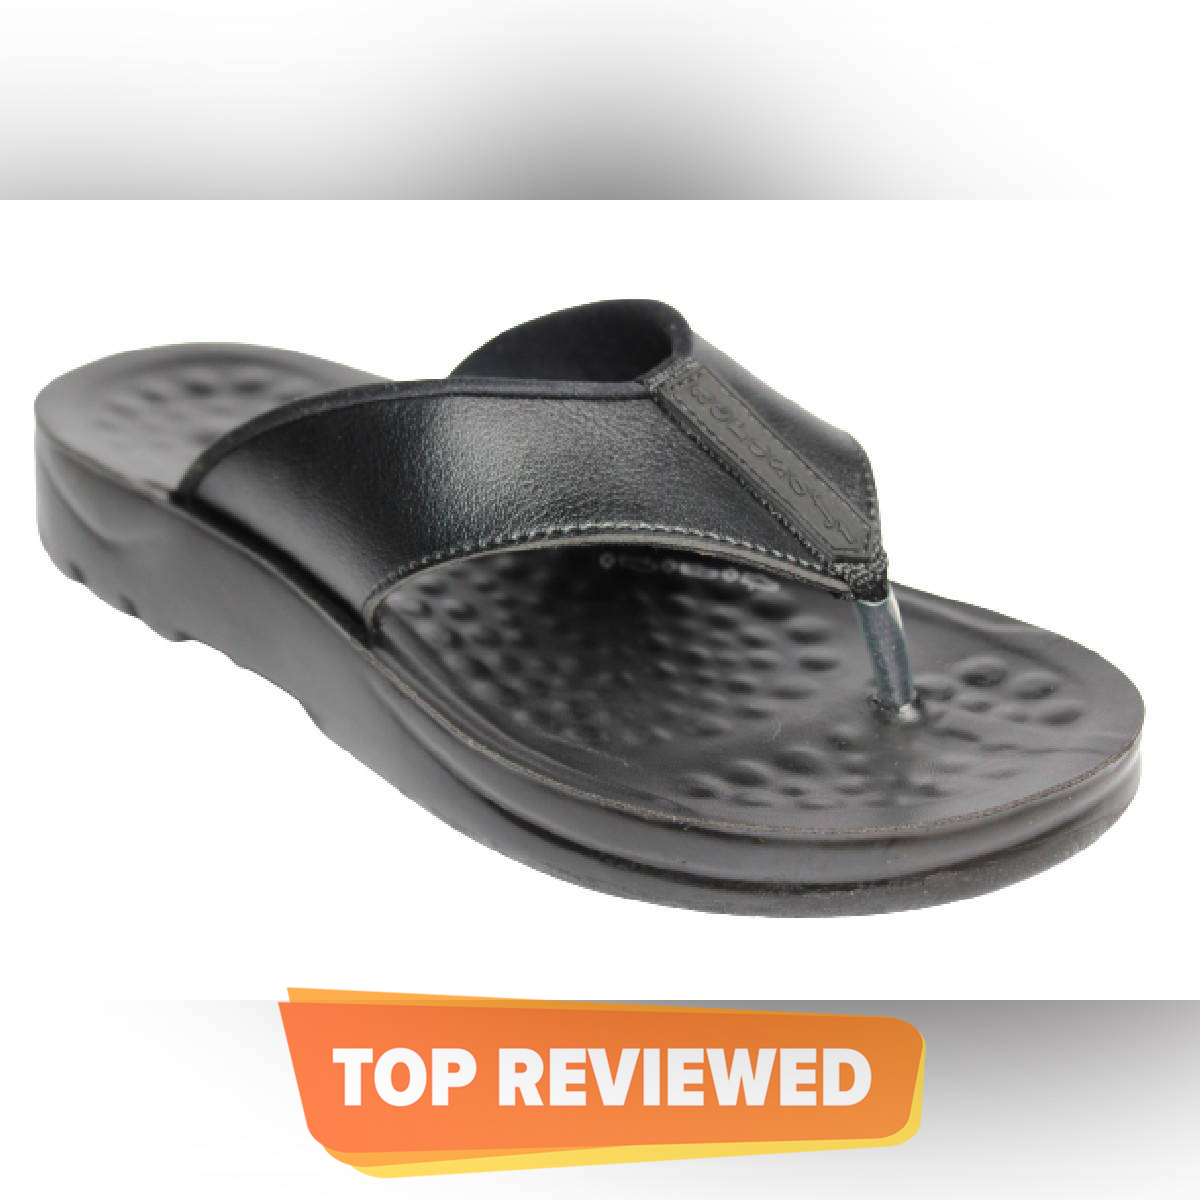 Aerosoft Black Synthetic Leather Slippers For Men A5101